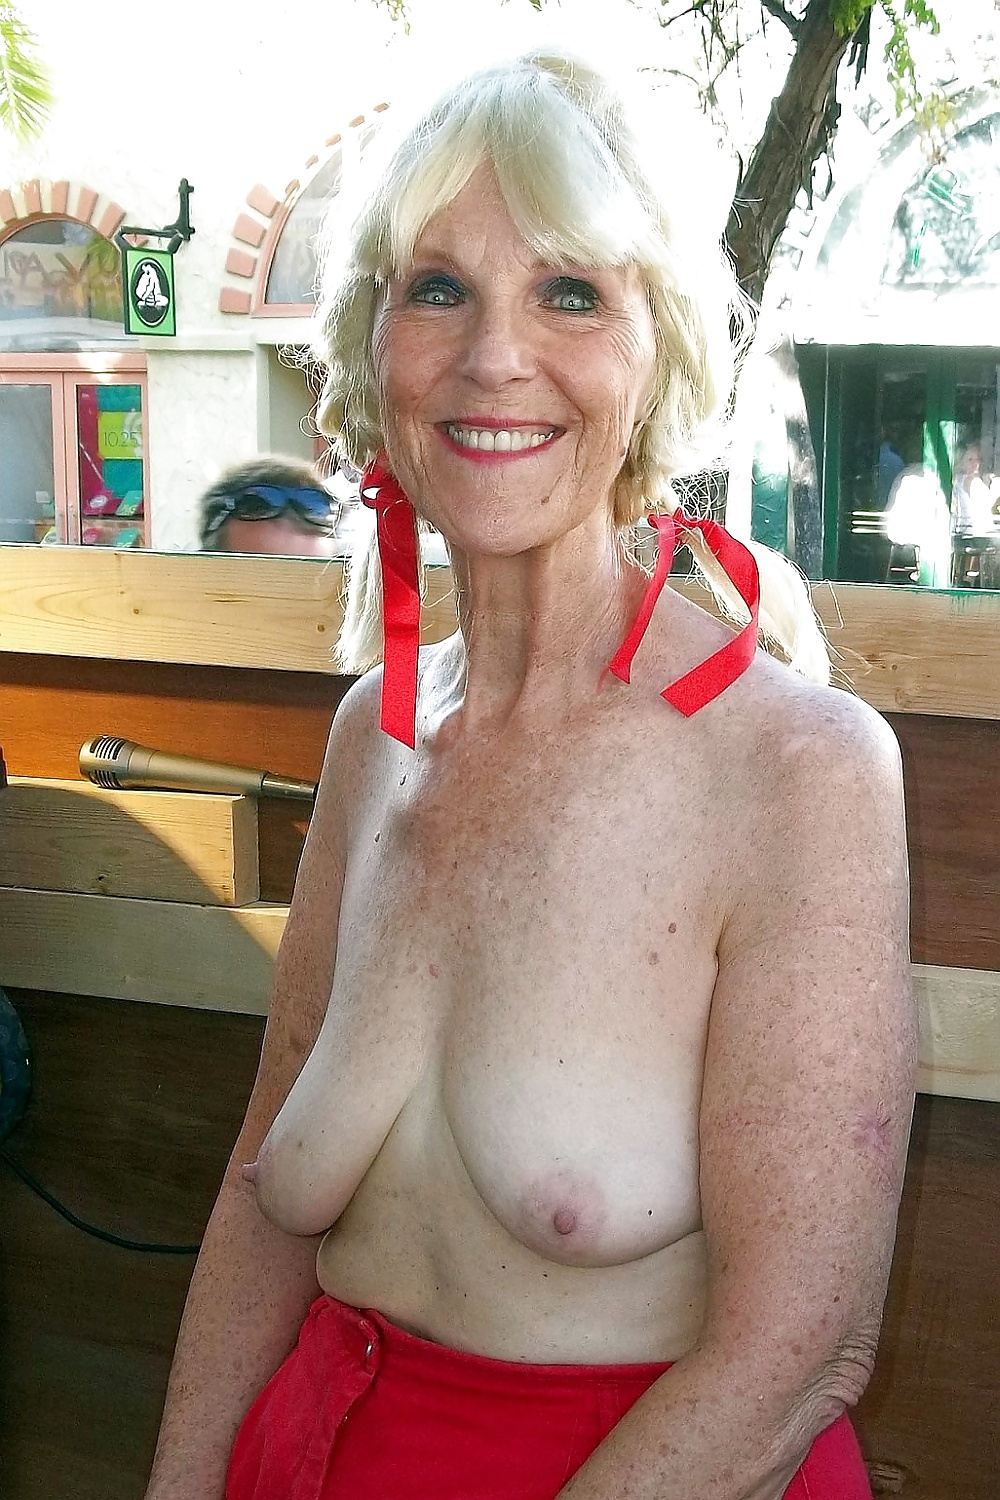 Older women sagging breasts galleries, hardcor pon